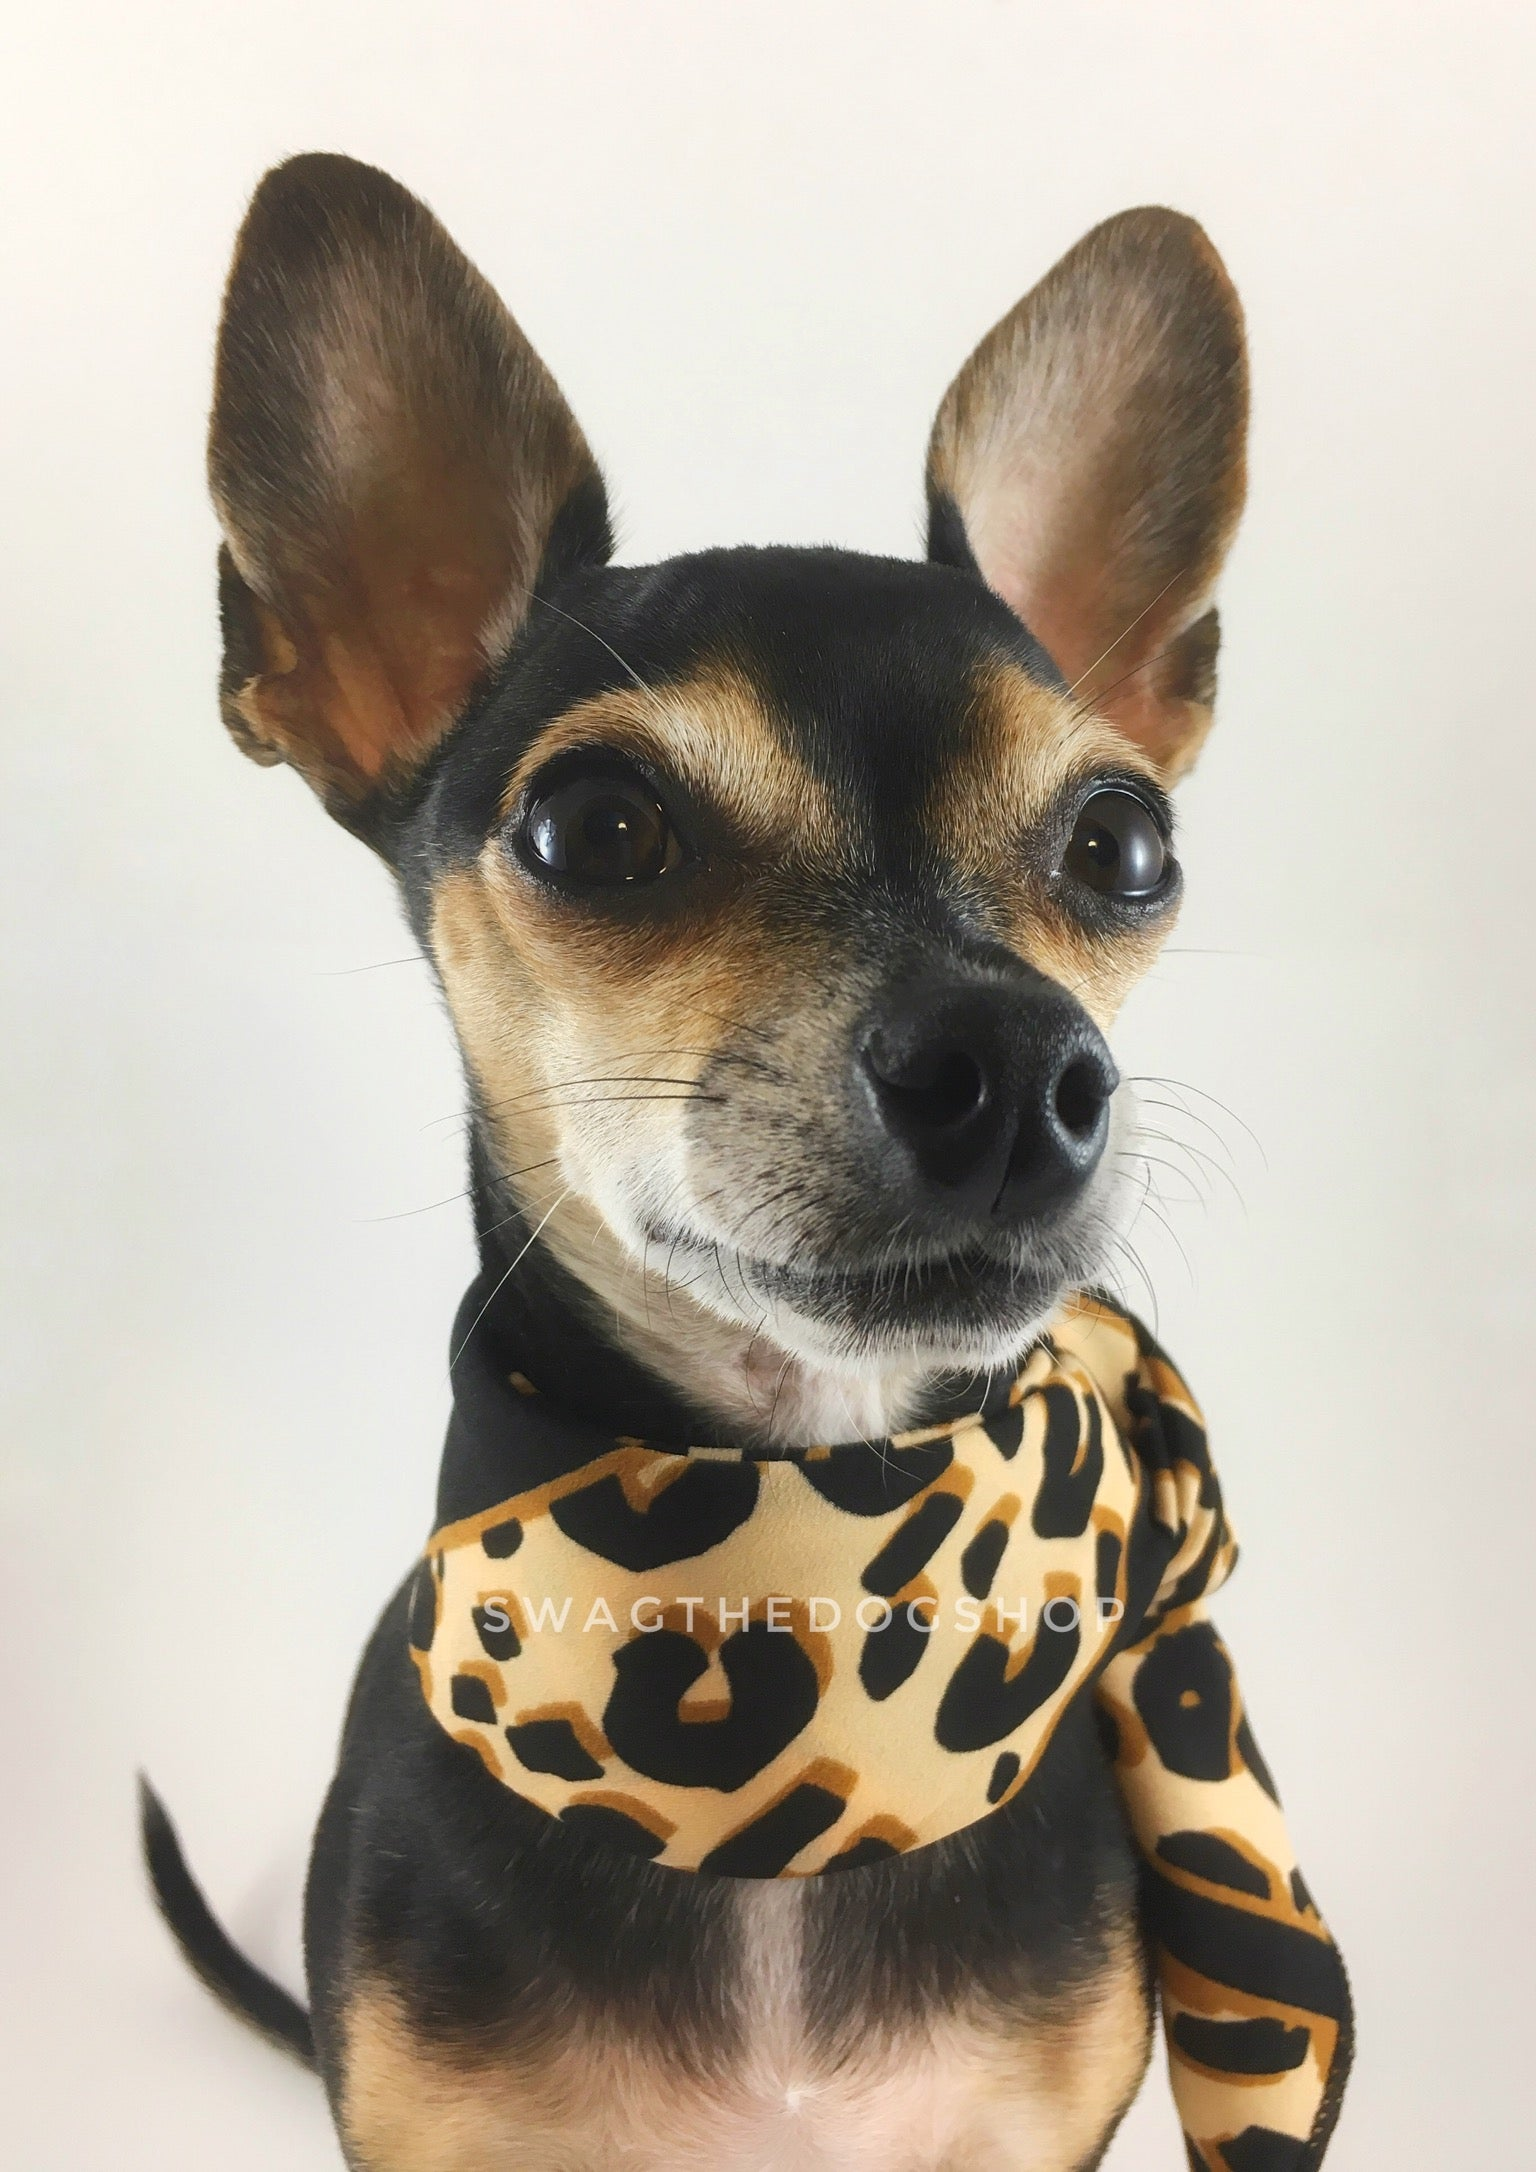 Leopard Ivory Cream Swagdana Scarf - Bust of Cute Chihuahua Wearing Swagdana Scarf as Neckerchief. Dog Bandana. Dog Scarf.